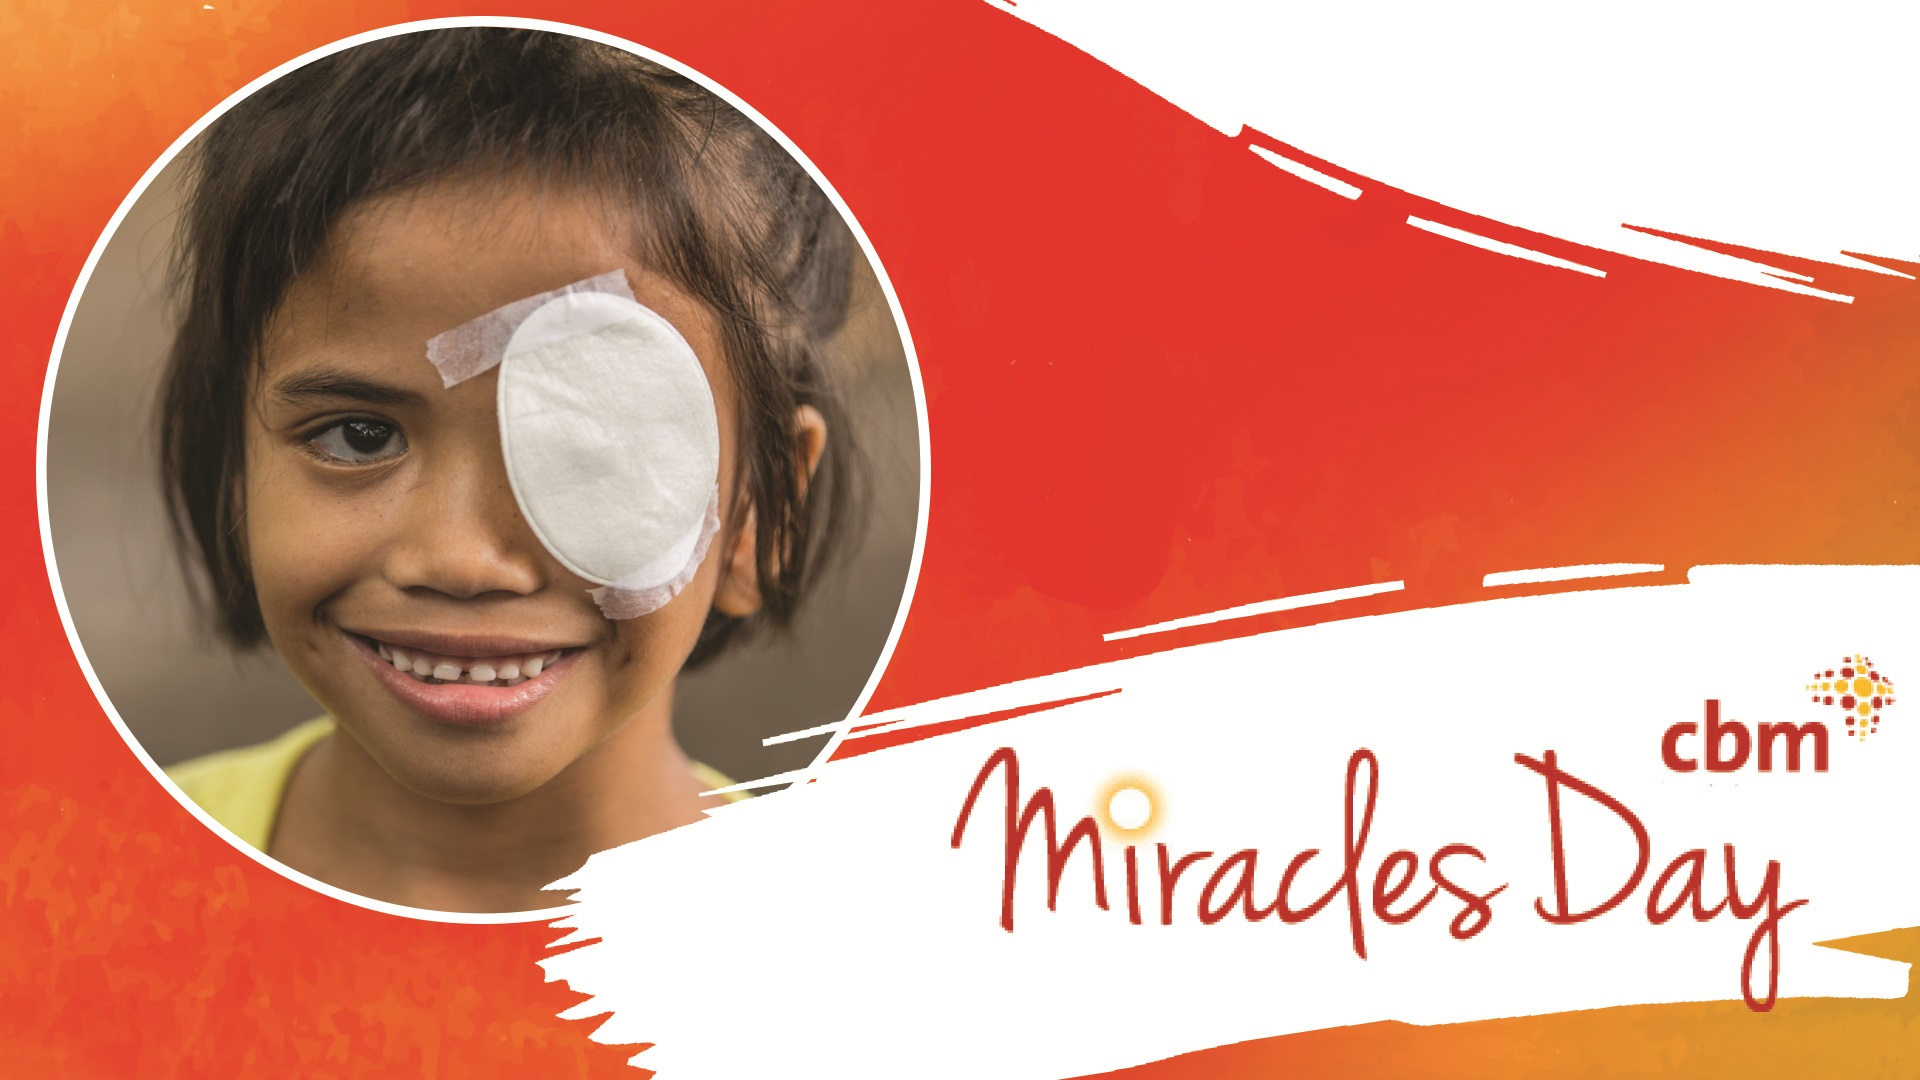 Christian Media Rallies Support for Miracles Day